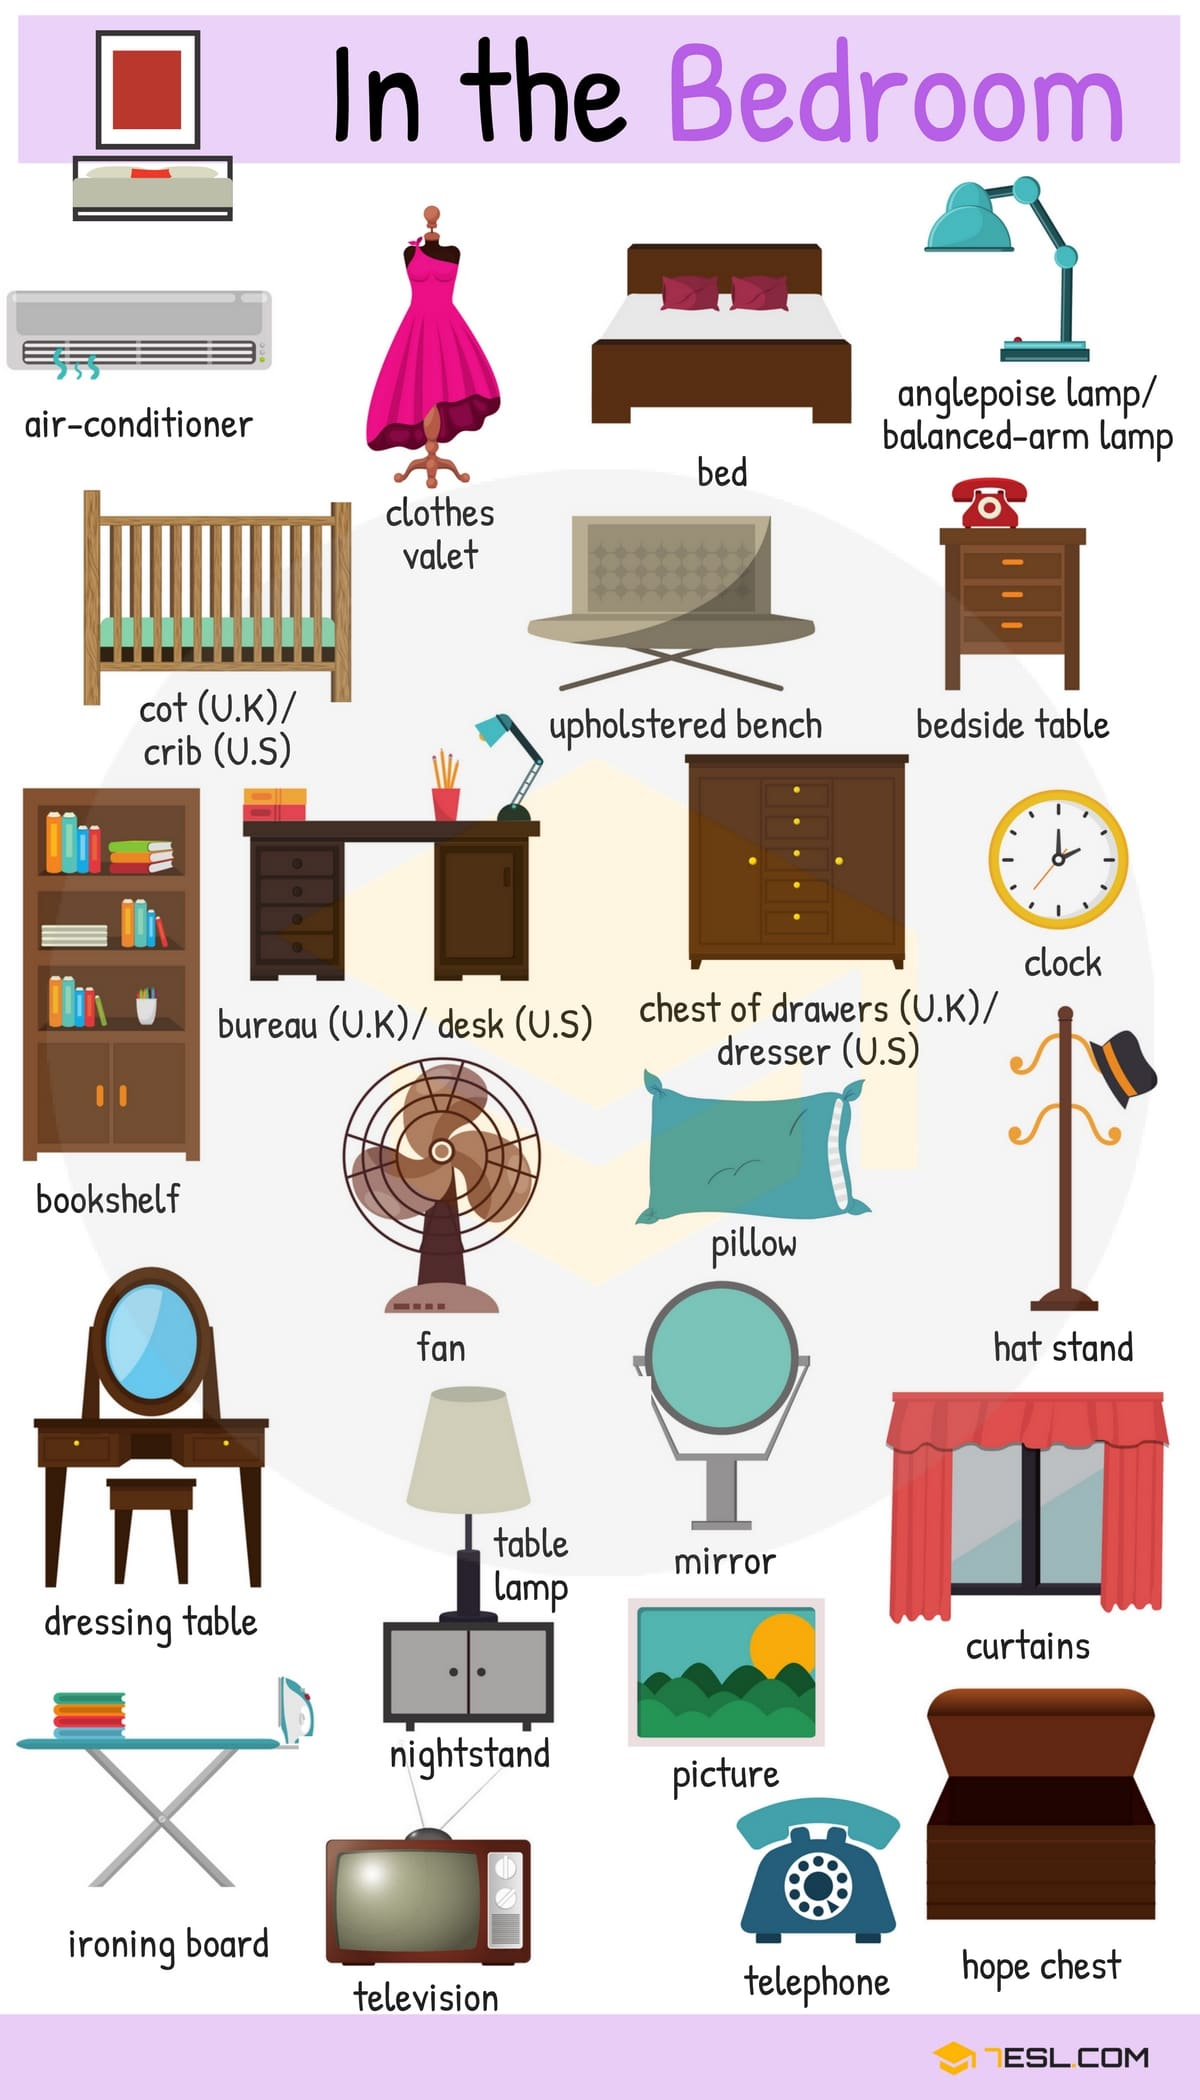 Rooms in a House Vocabulary in English 1